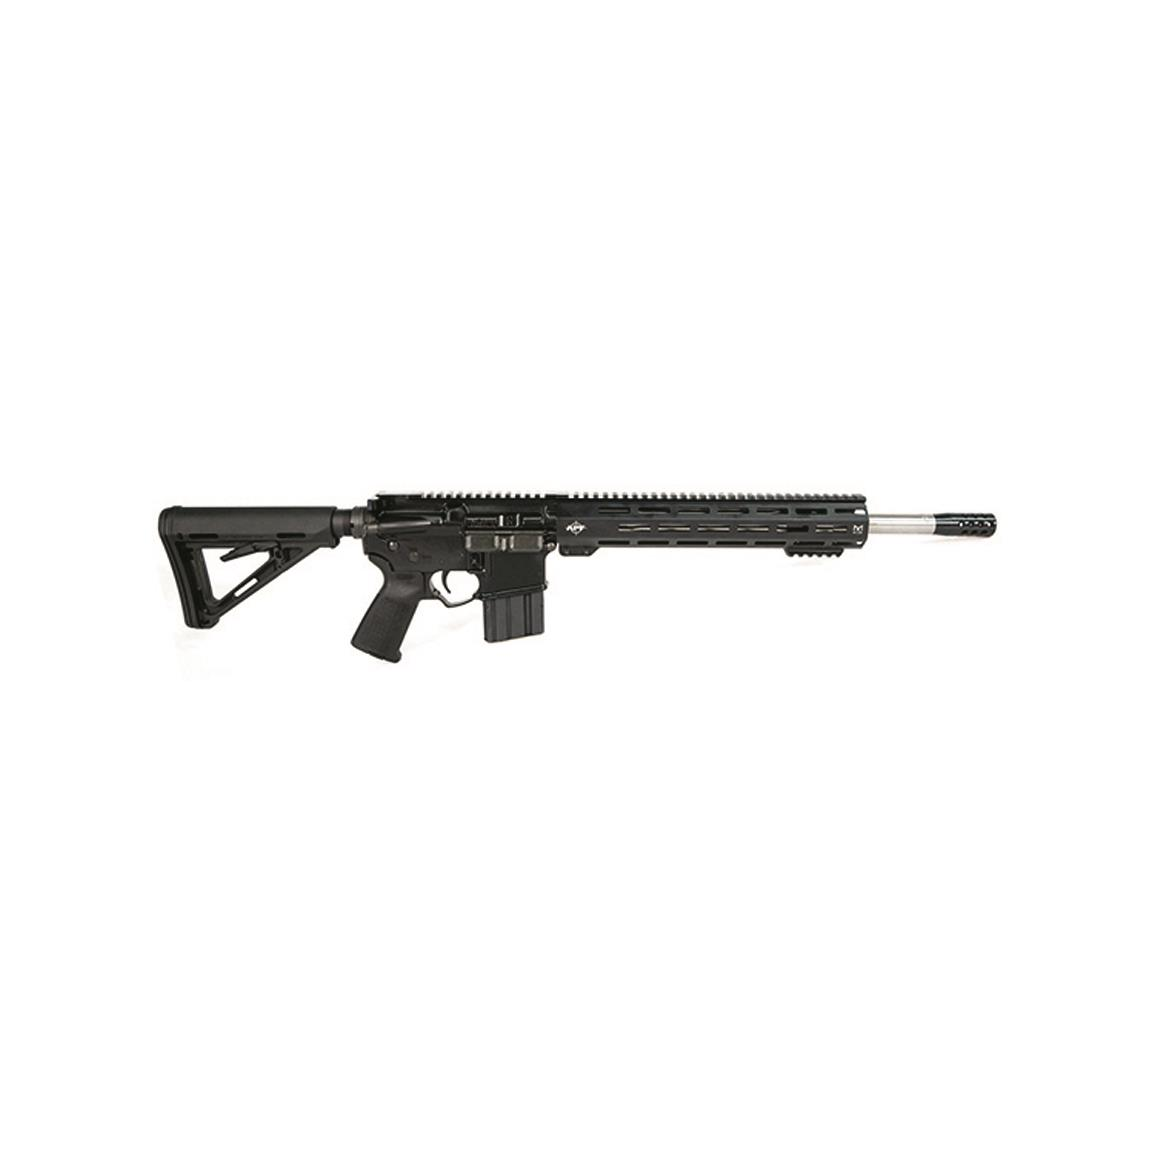 "APF 450 Bushmaster Carbine AR-15, Semi-Automatic, 16"" Stainless Barrel, 7+1 Rounds"